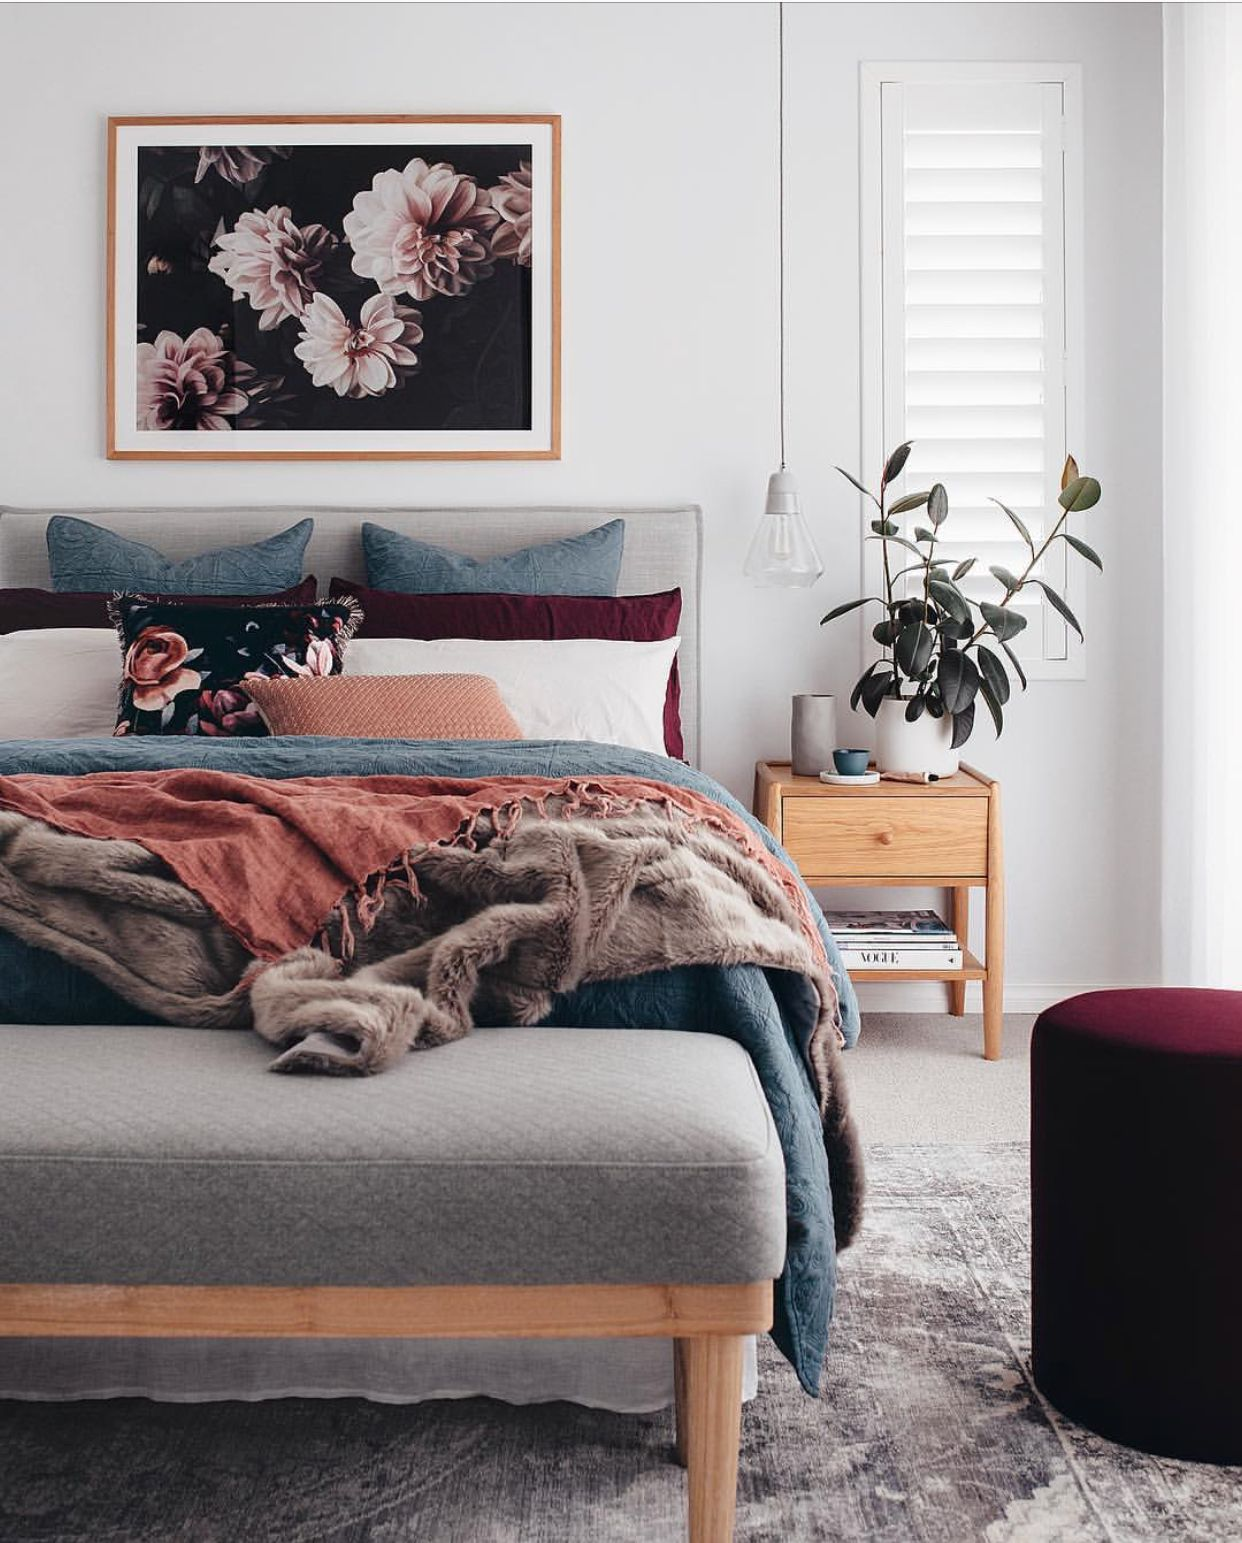 21 Cosy Winter Bedroom Ideas: Really Like The Darker Colours Mixed With The Dusky Pink